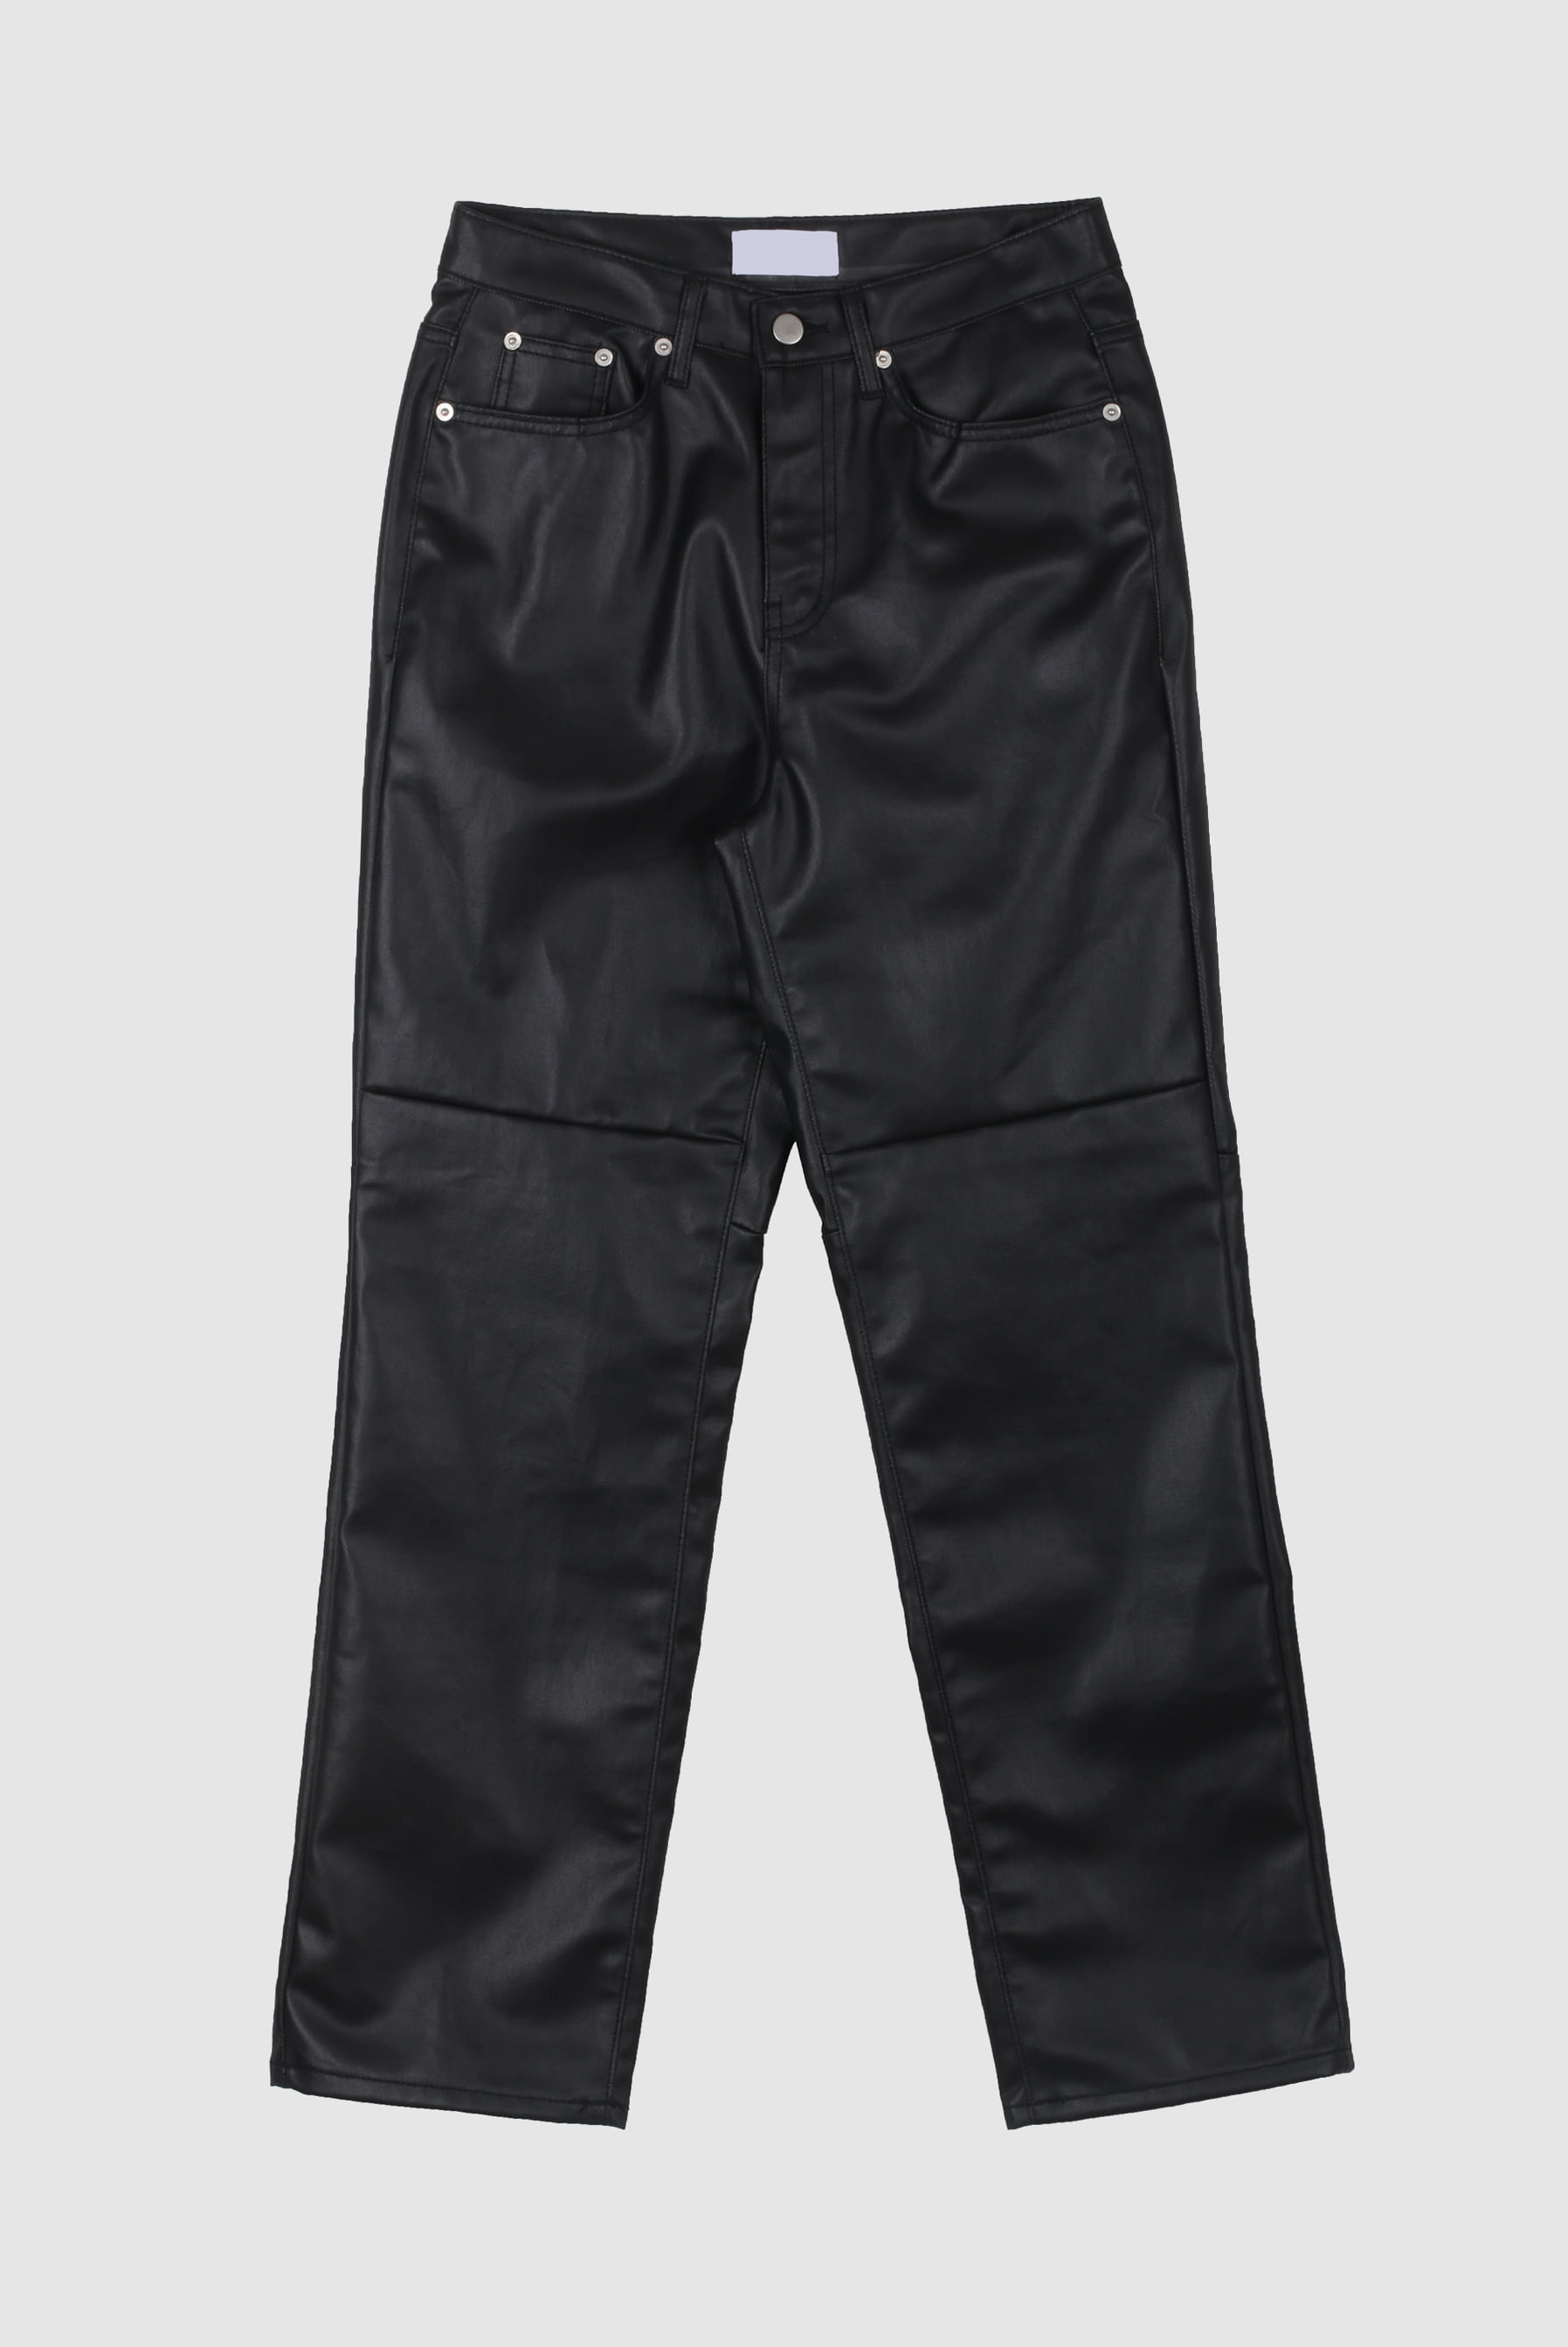 Leather_Incision Wide_Pants